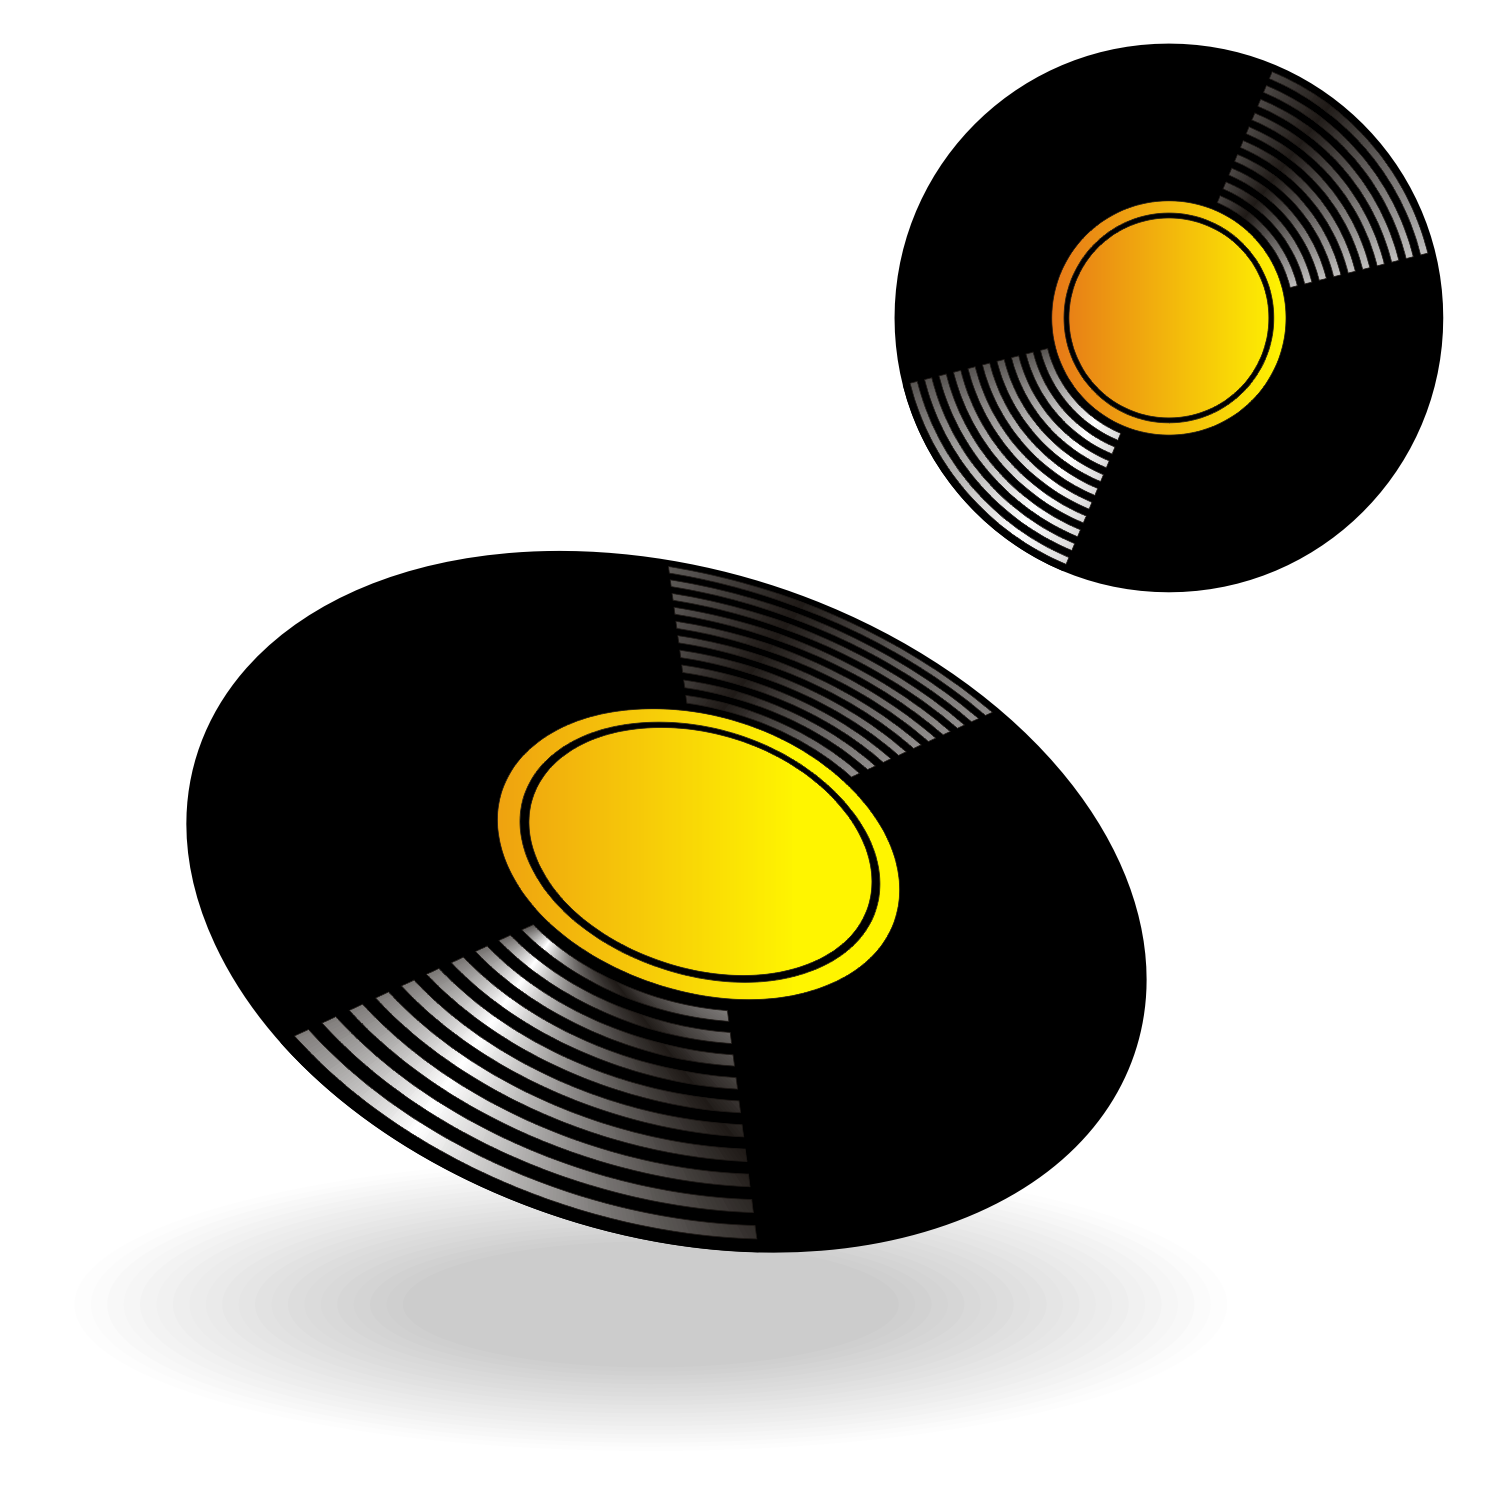 Vinyl record. Free vector illustration.